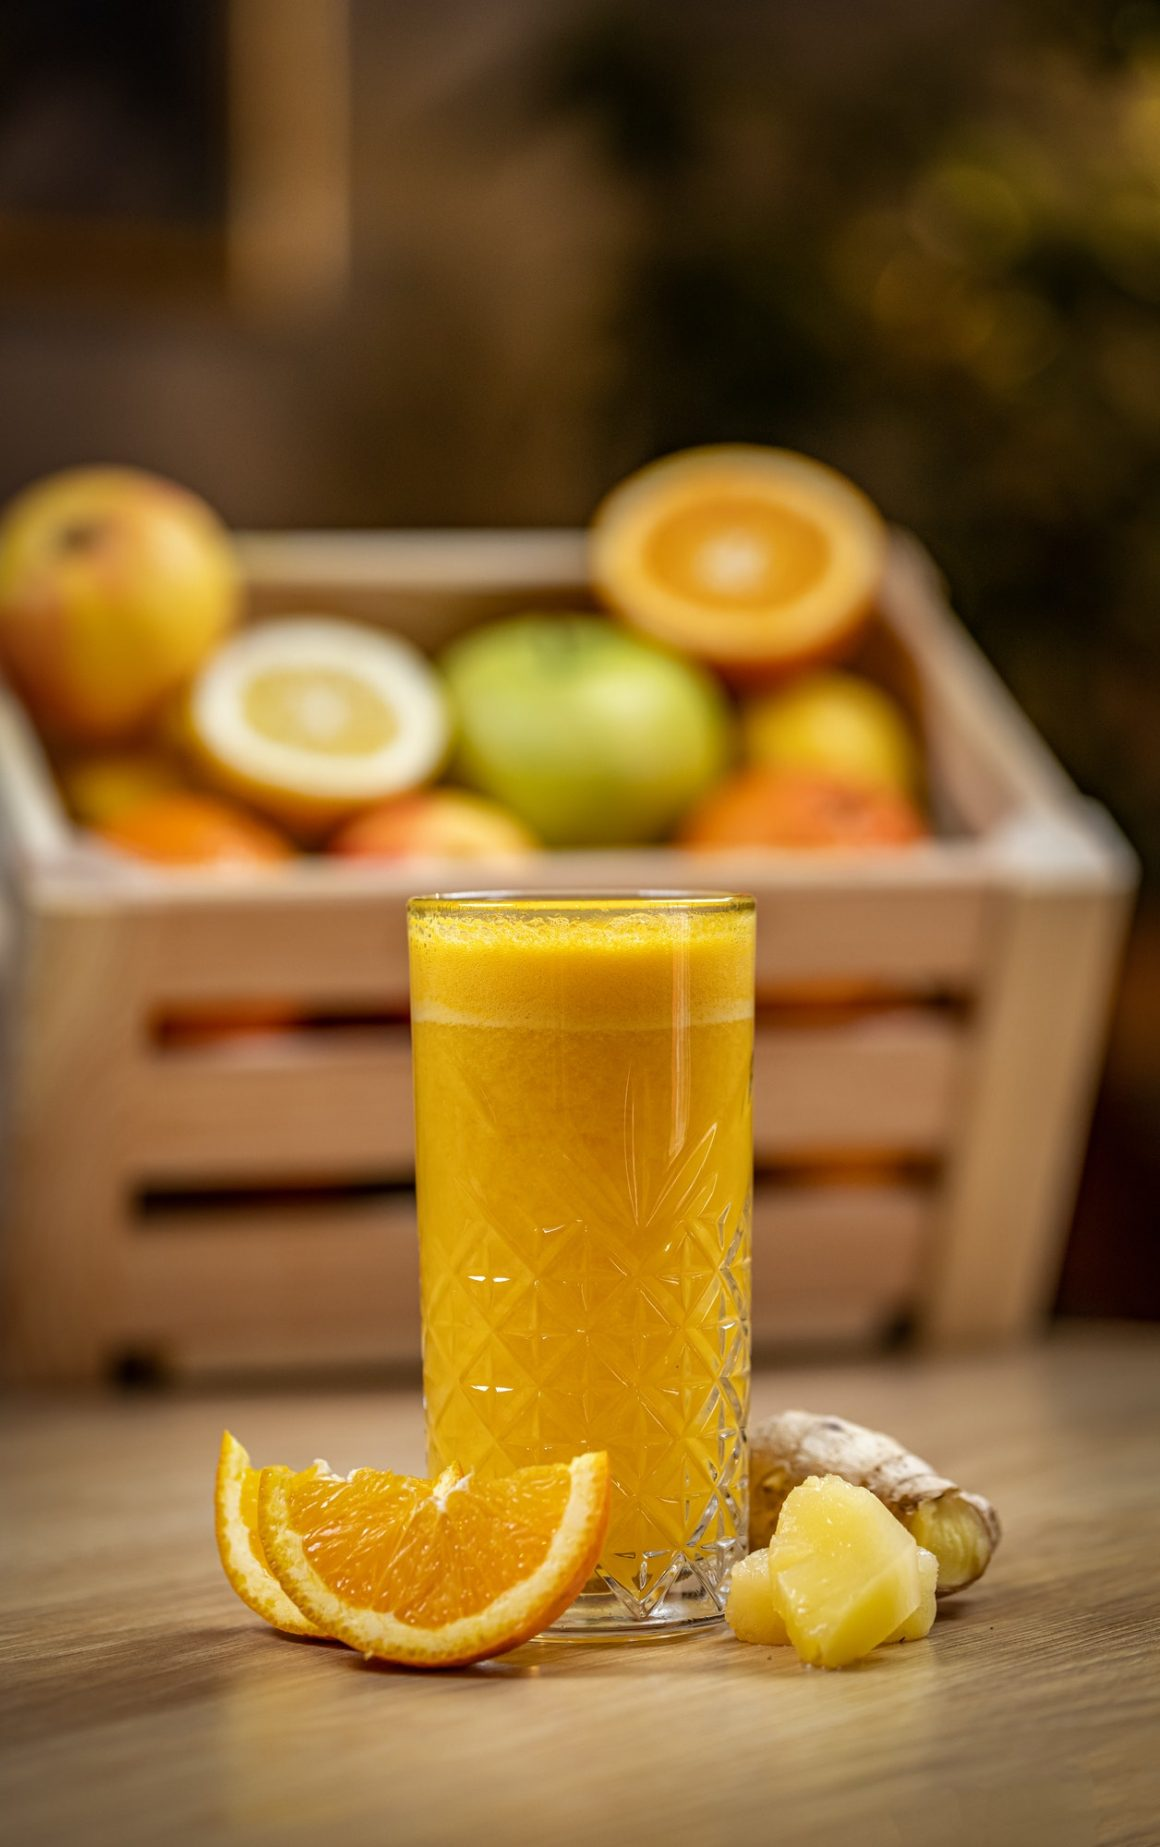 Healthy orange, pineapple and ginger juice